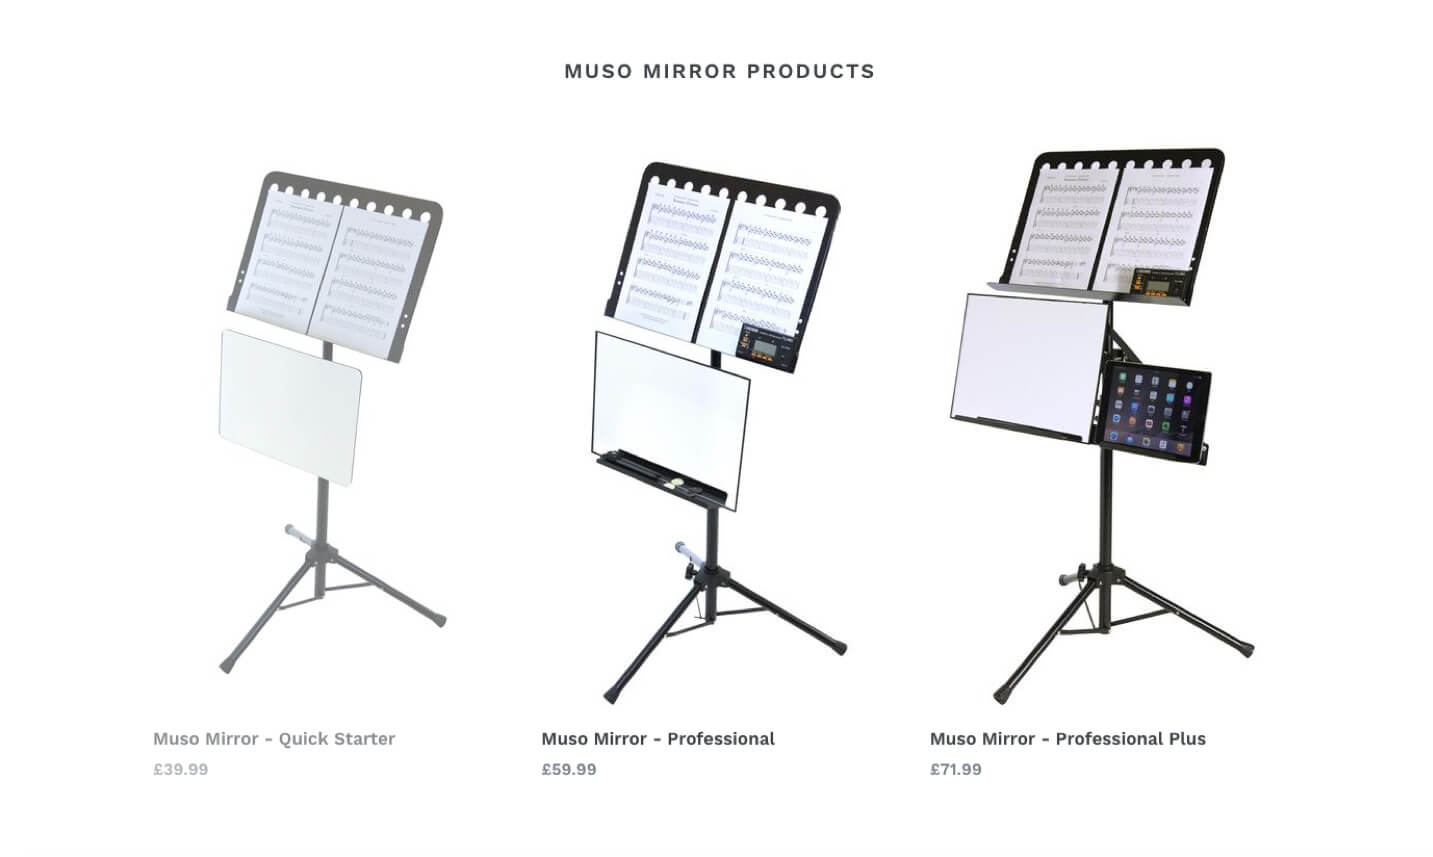 Products on the Muso Mirror eCommerce website